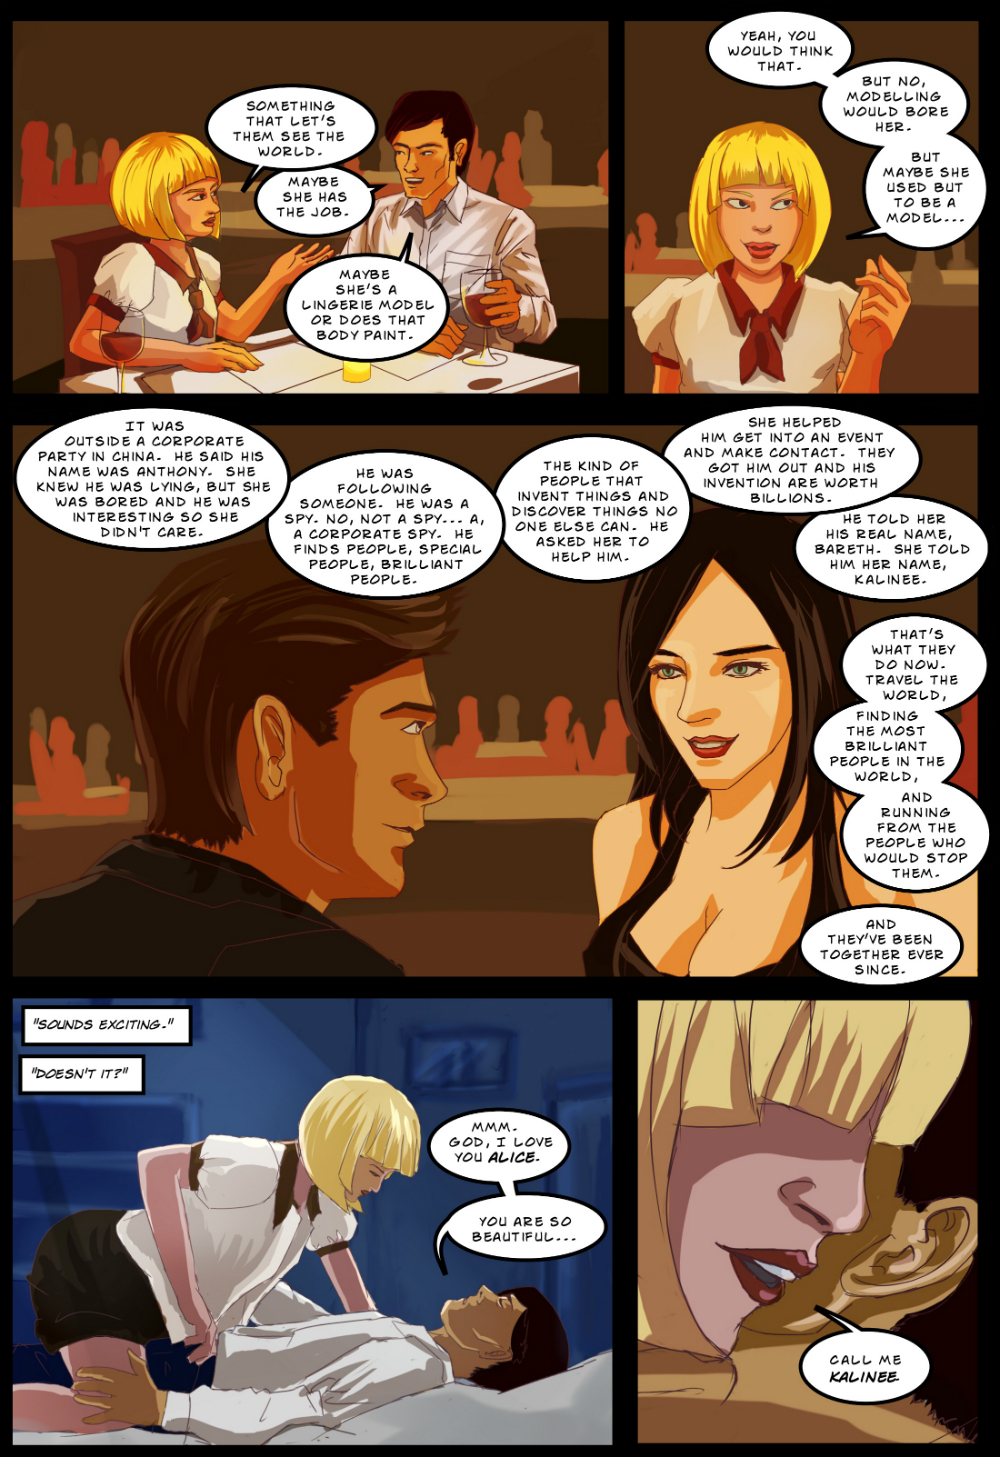 BEING OTHER PEOPLE page 2 -- story 26 in The Book of Lies